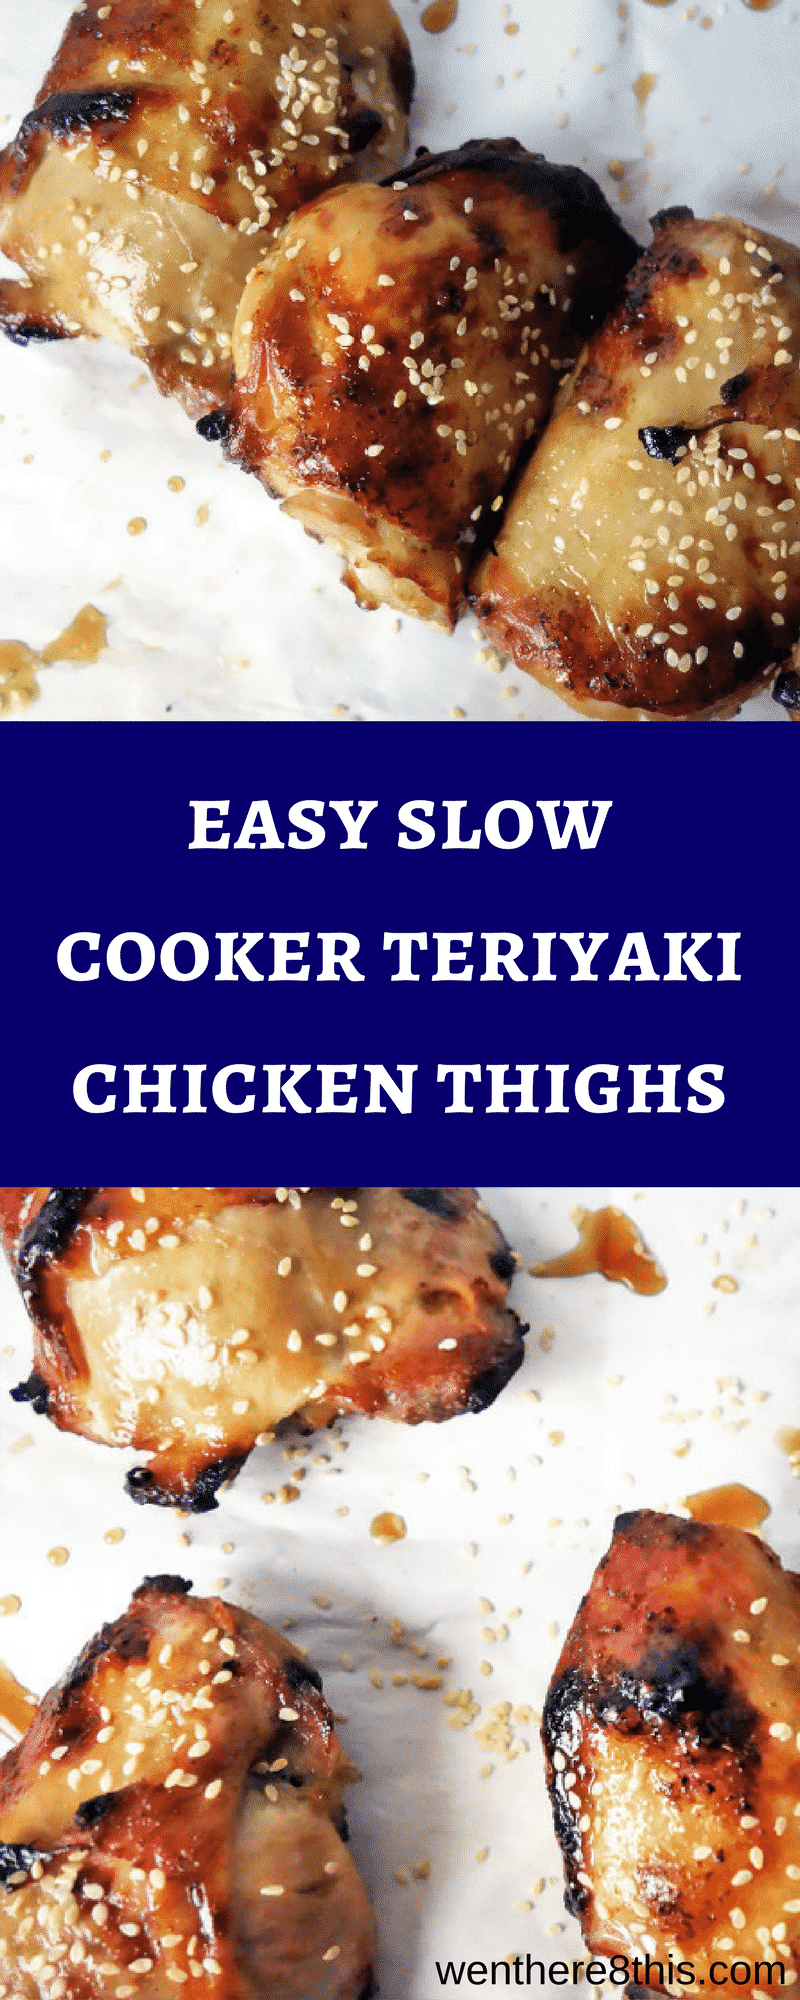 These easy Slow Cooker Teriyaki Chicken Thighs are perfect for weeknight dinner. They are delicious, healthy and packed full of sweet and savory flavors!teriyaki chicken recipes | slow cooker chicken easy | slow cooker teriyaki chicken | easy teriyaki chicken | healthy teriyaki chicken recipe | healthy chicken recipes | healthy recipes | slow cooker recipes | crispy teriyaki chicken easy | easy teriyaki sauce recipe | teriyaki sauce recipe